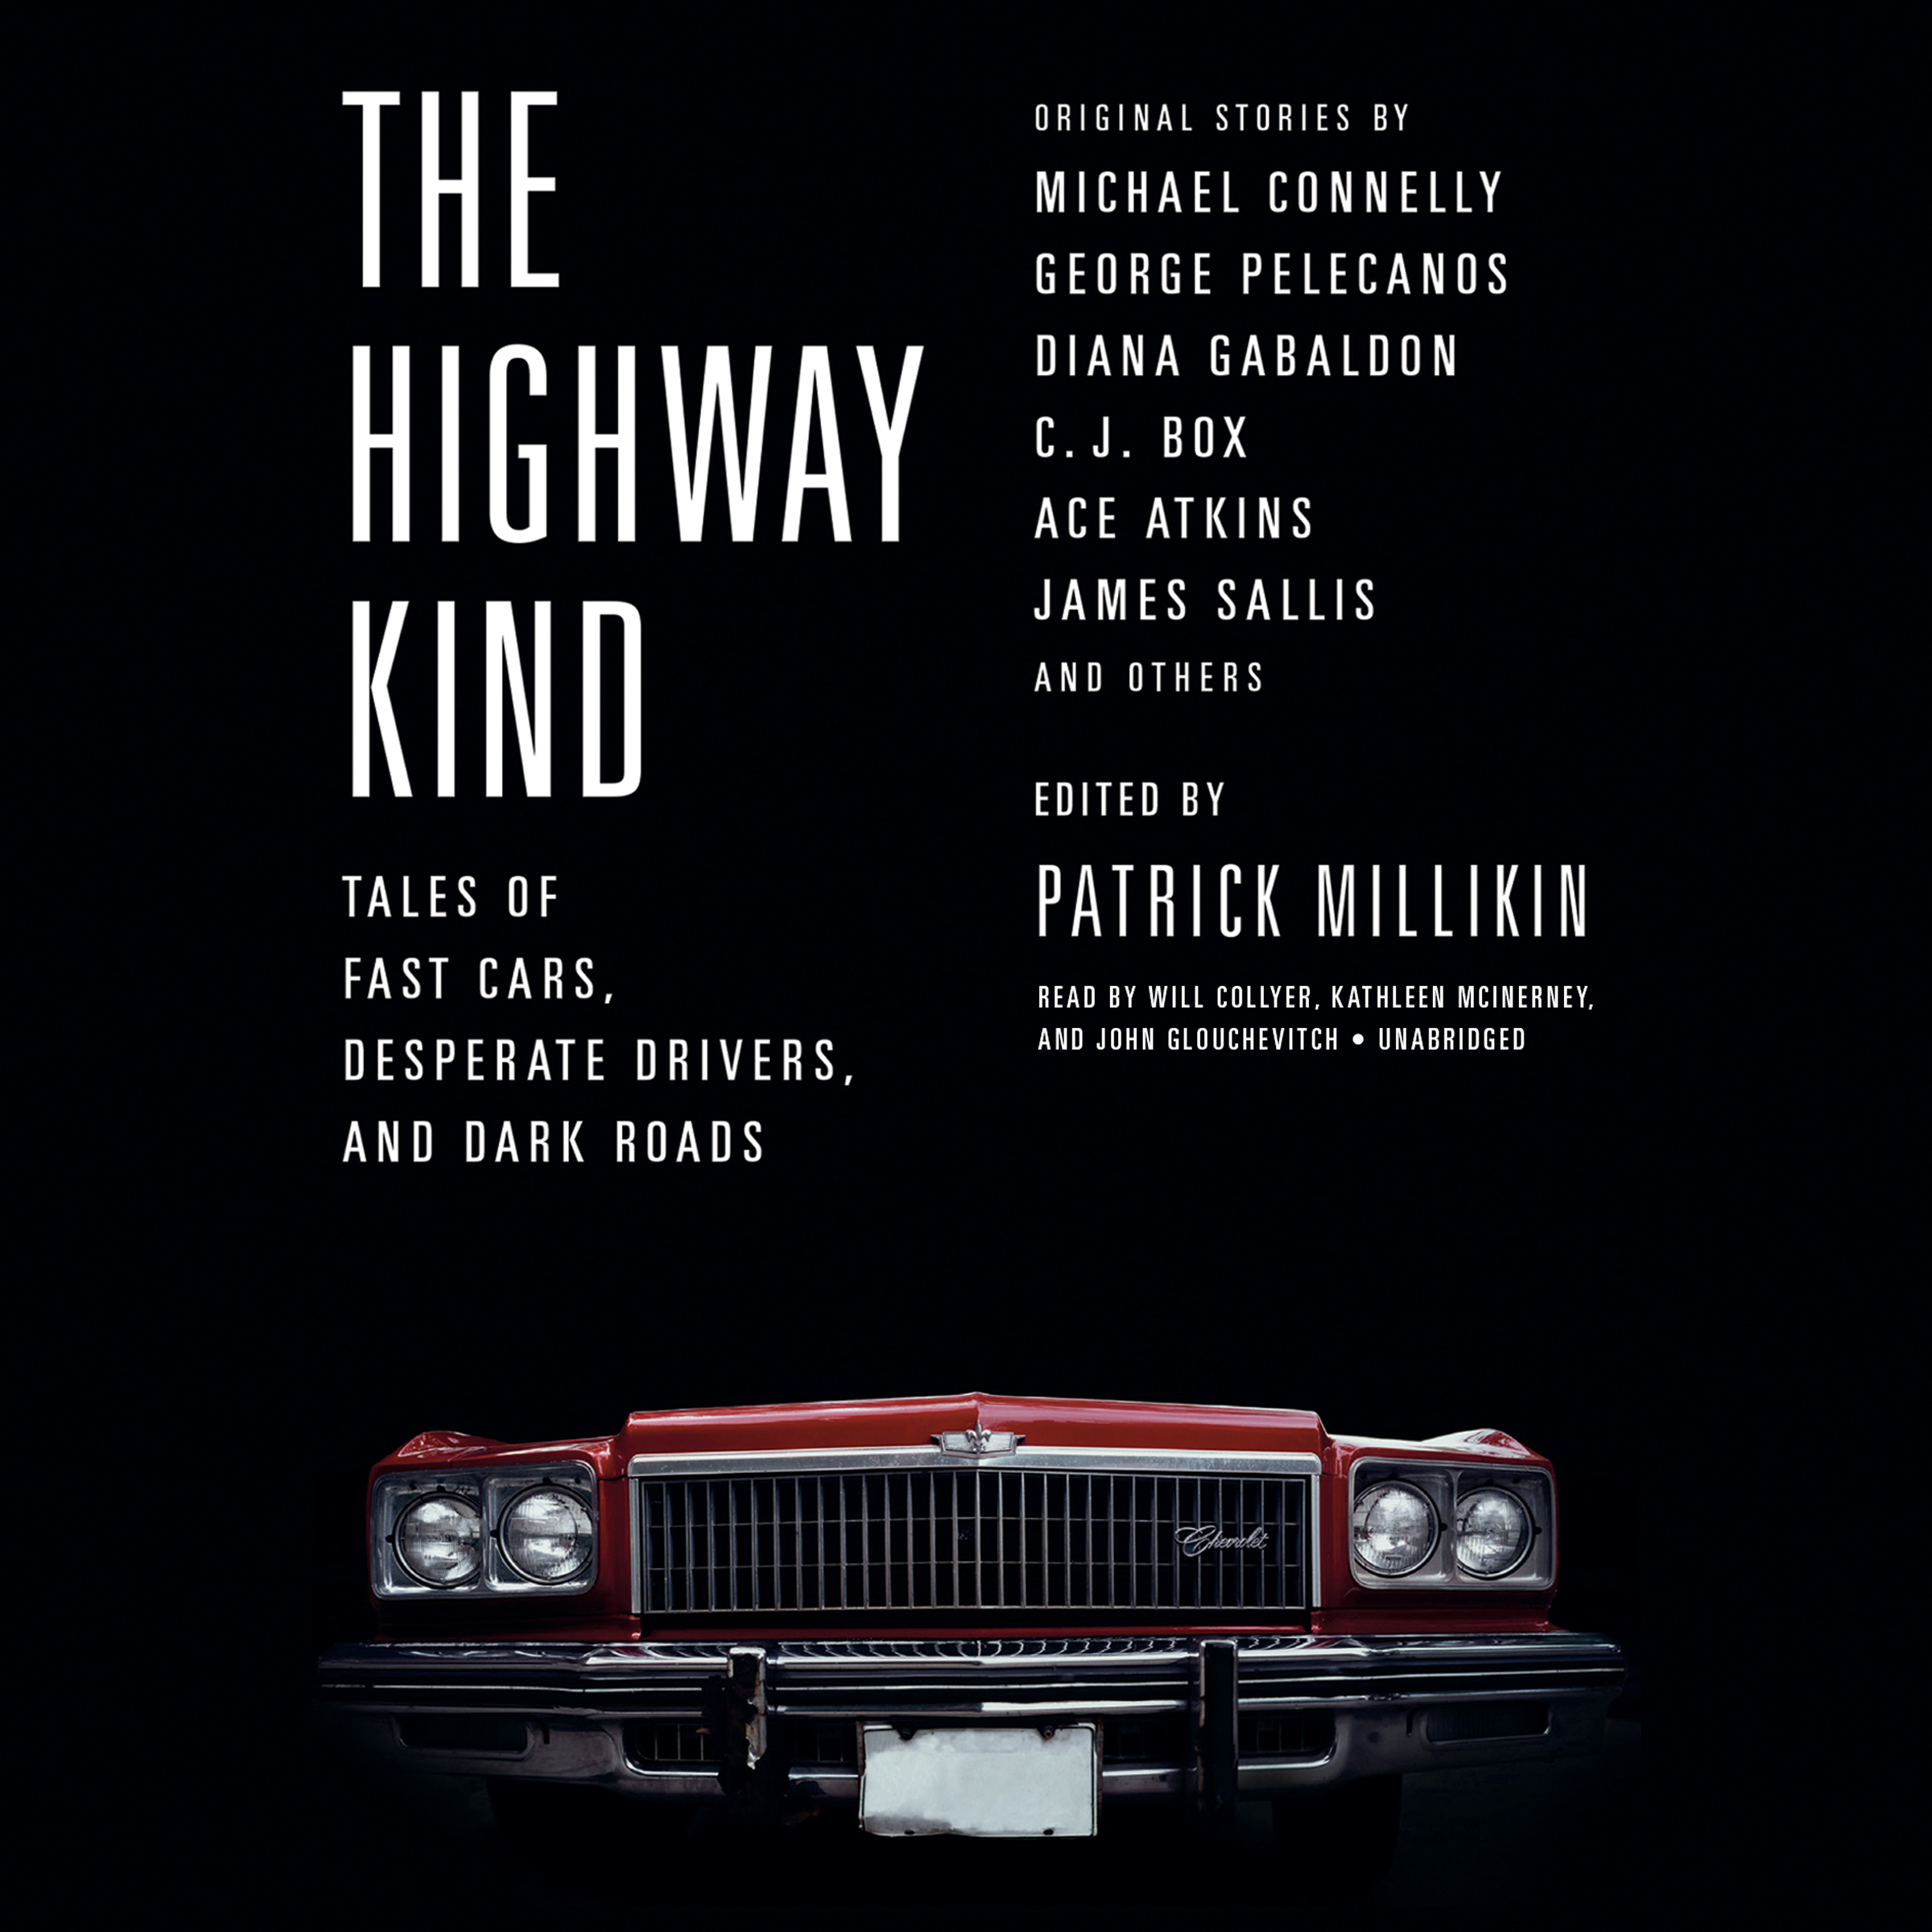 Printable The Highway Kind: Tales of Fast Cars,  Desperate Drivers,  and Dark Roads: Original Stories by Michael Connelly, George Pelecanos, C. J.  Box, Diana Gabaldon, Ace Atkins & Others Audiobook Cover Art